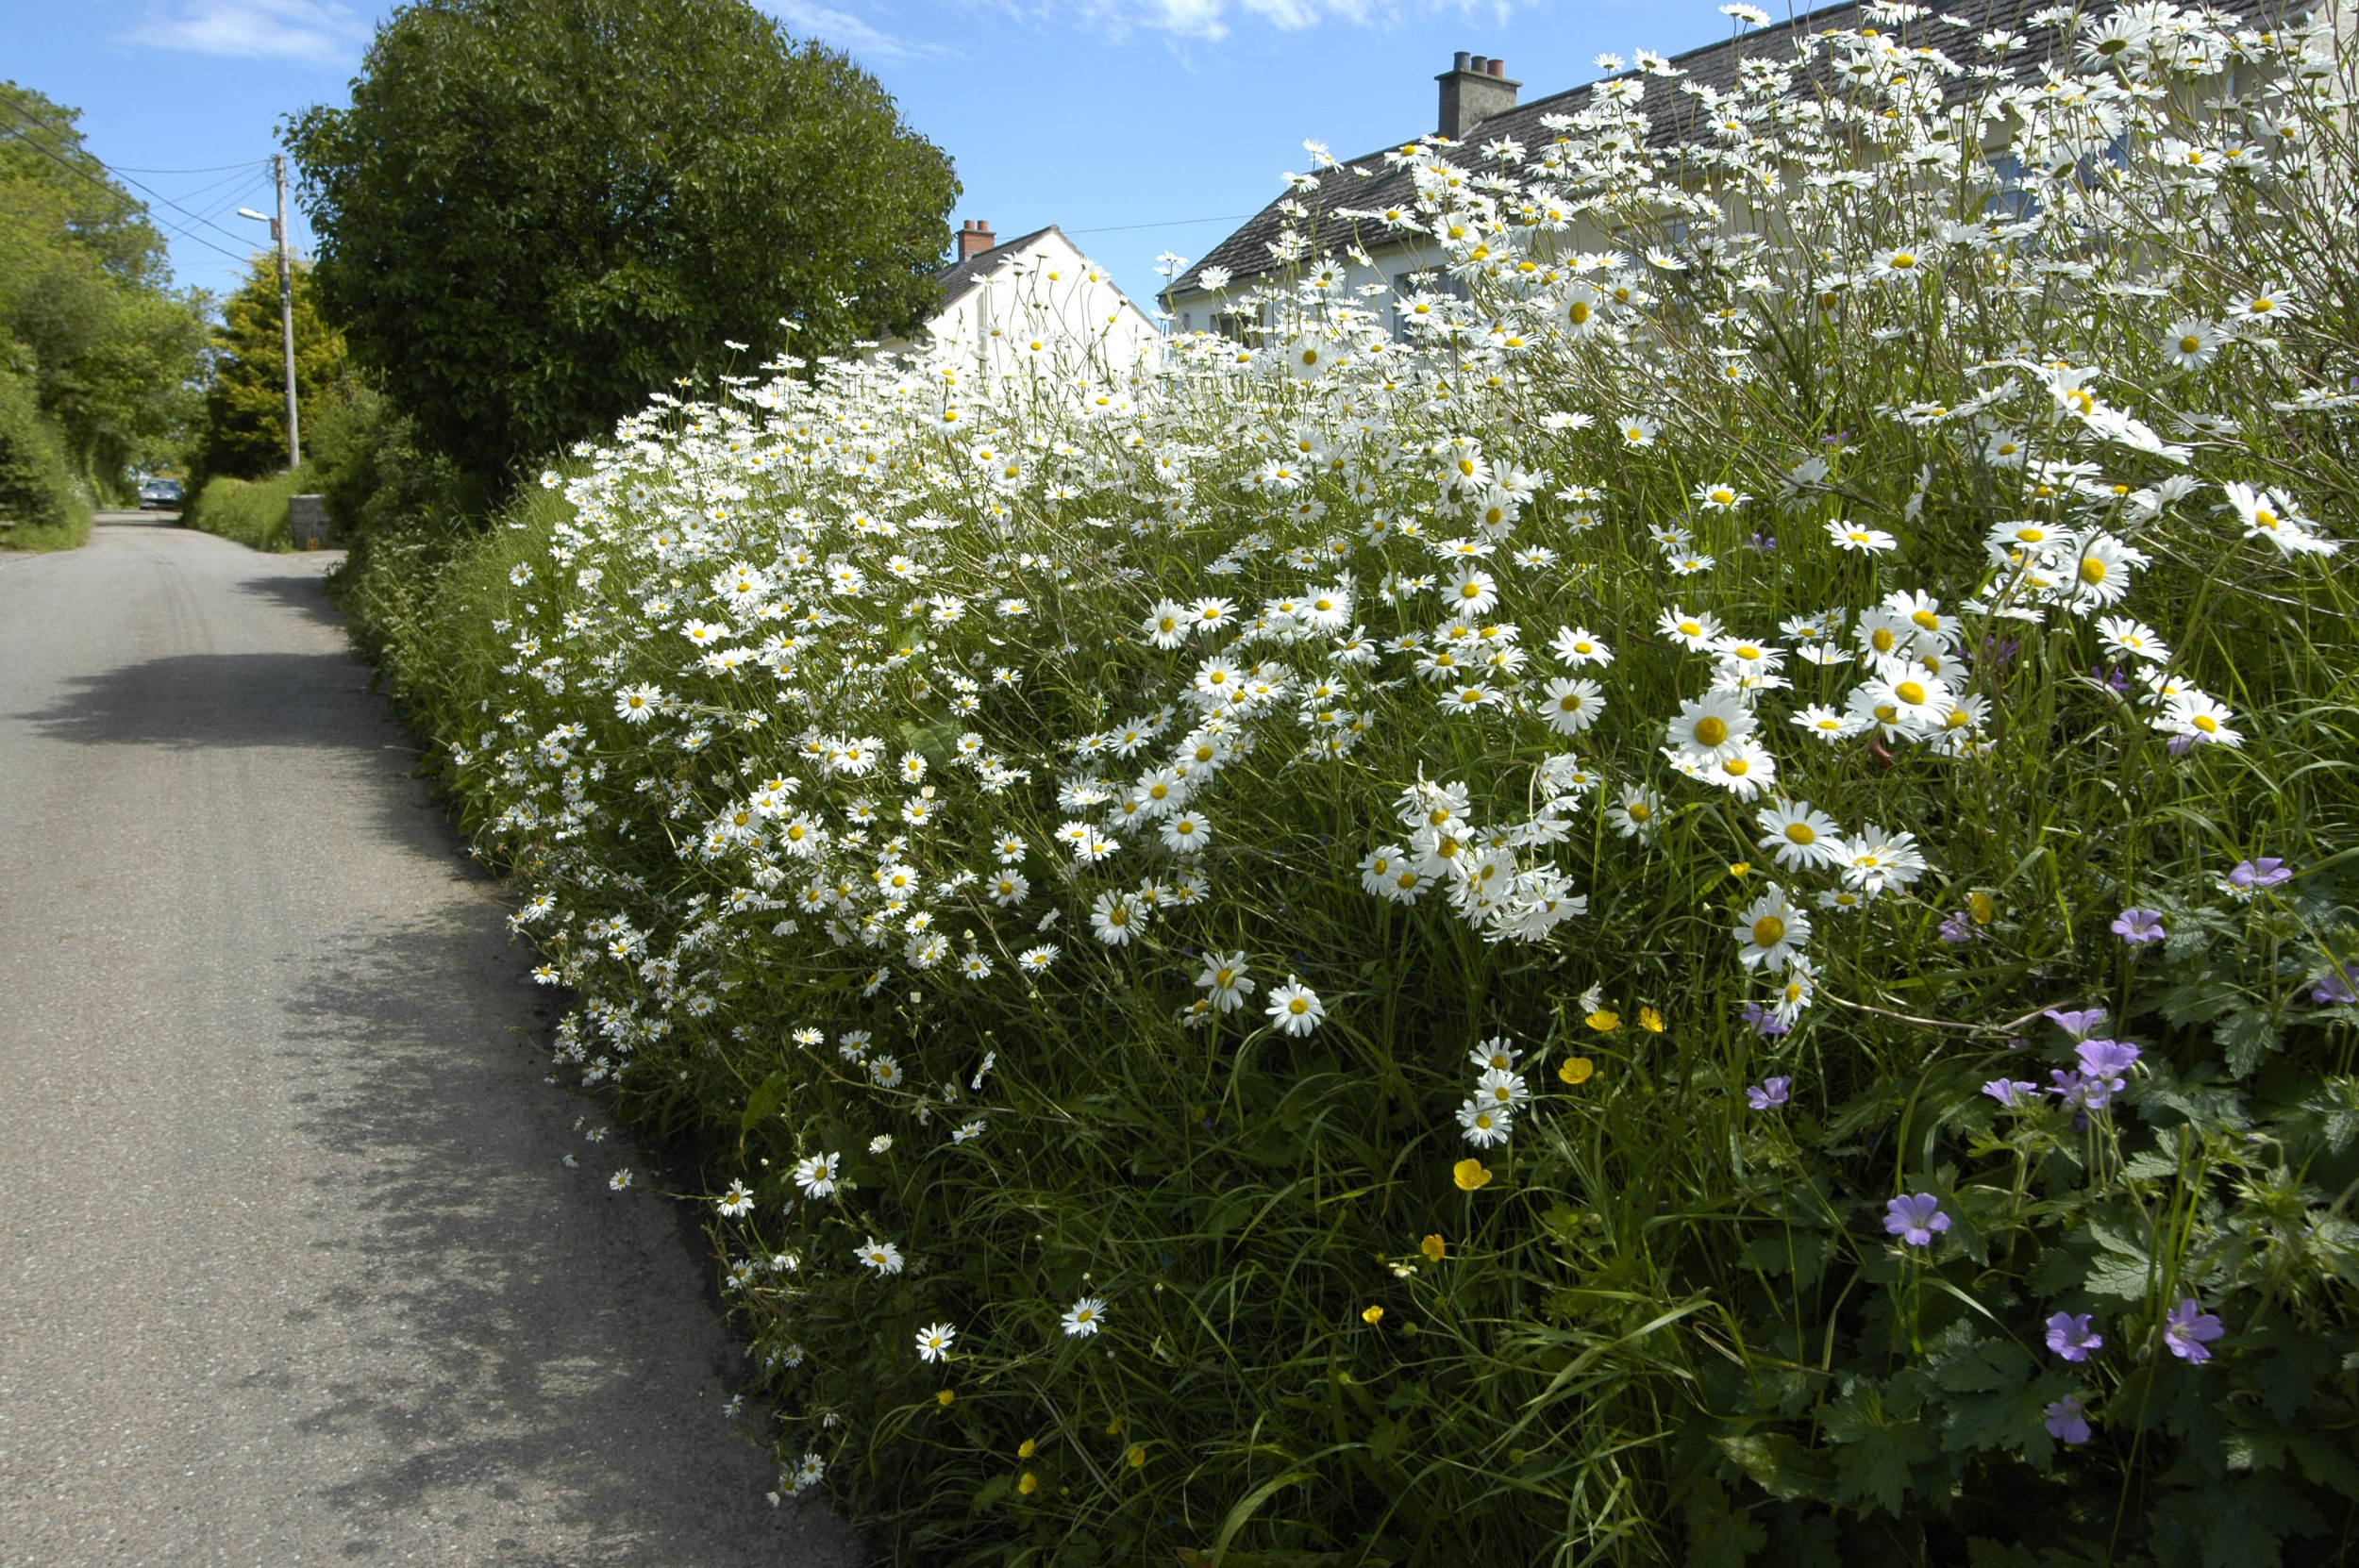 A previously well maintained grass verge now blooming with oxeye daisies.